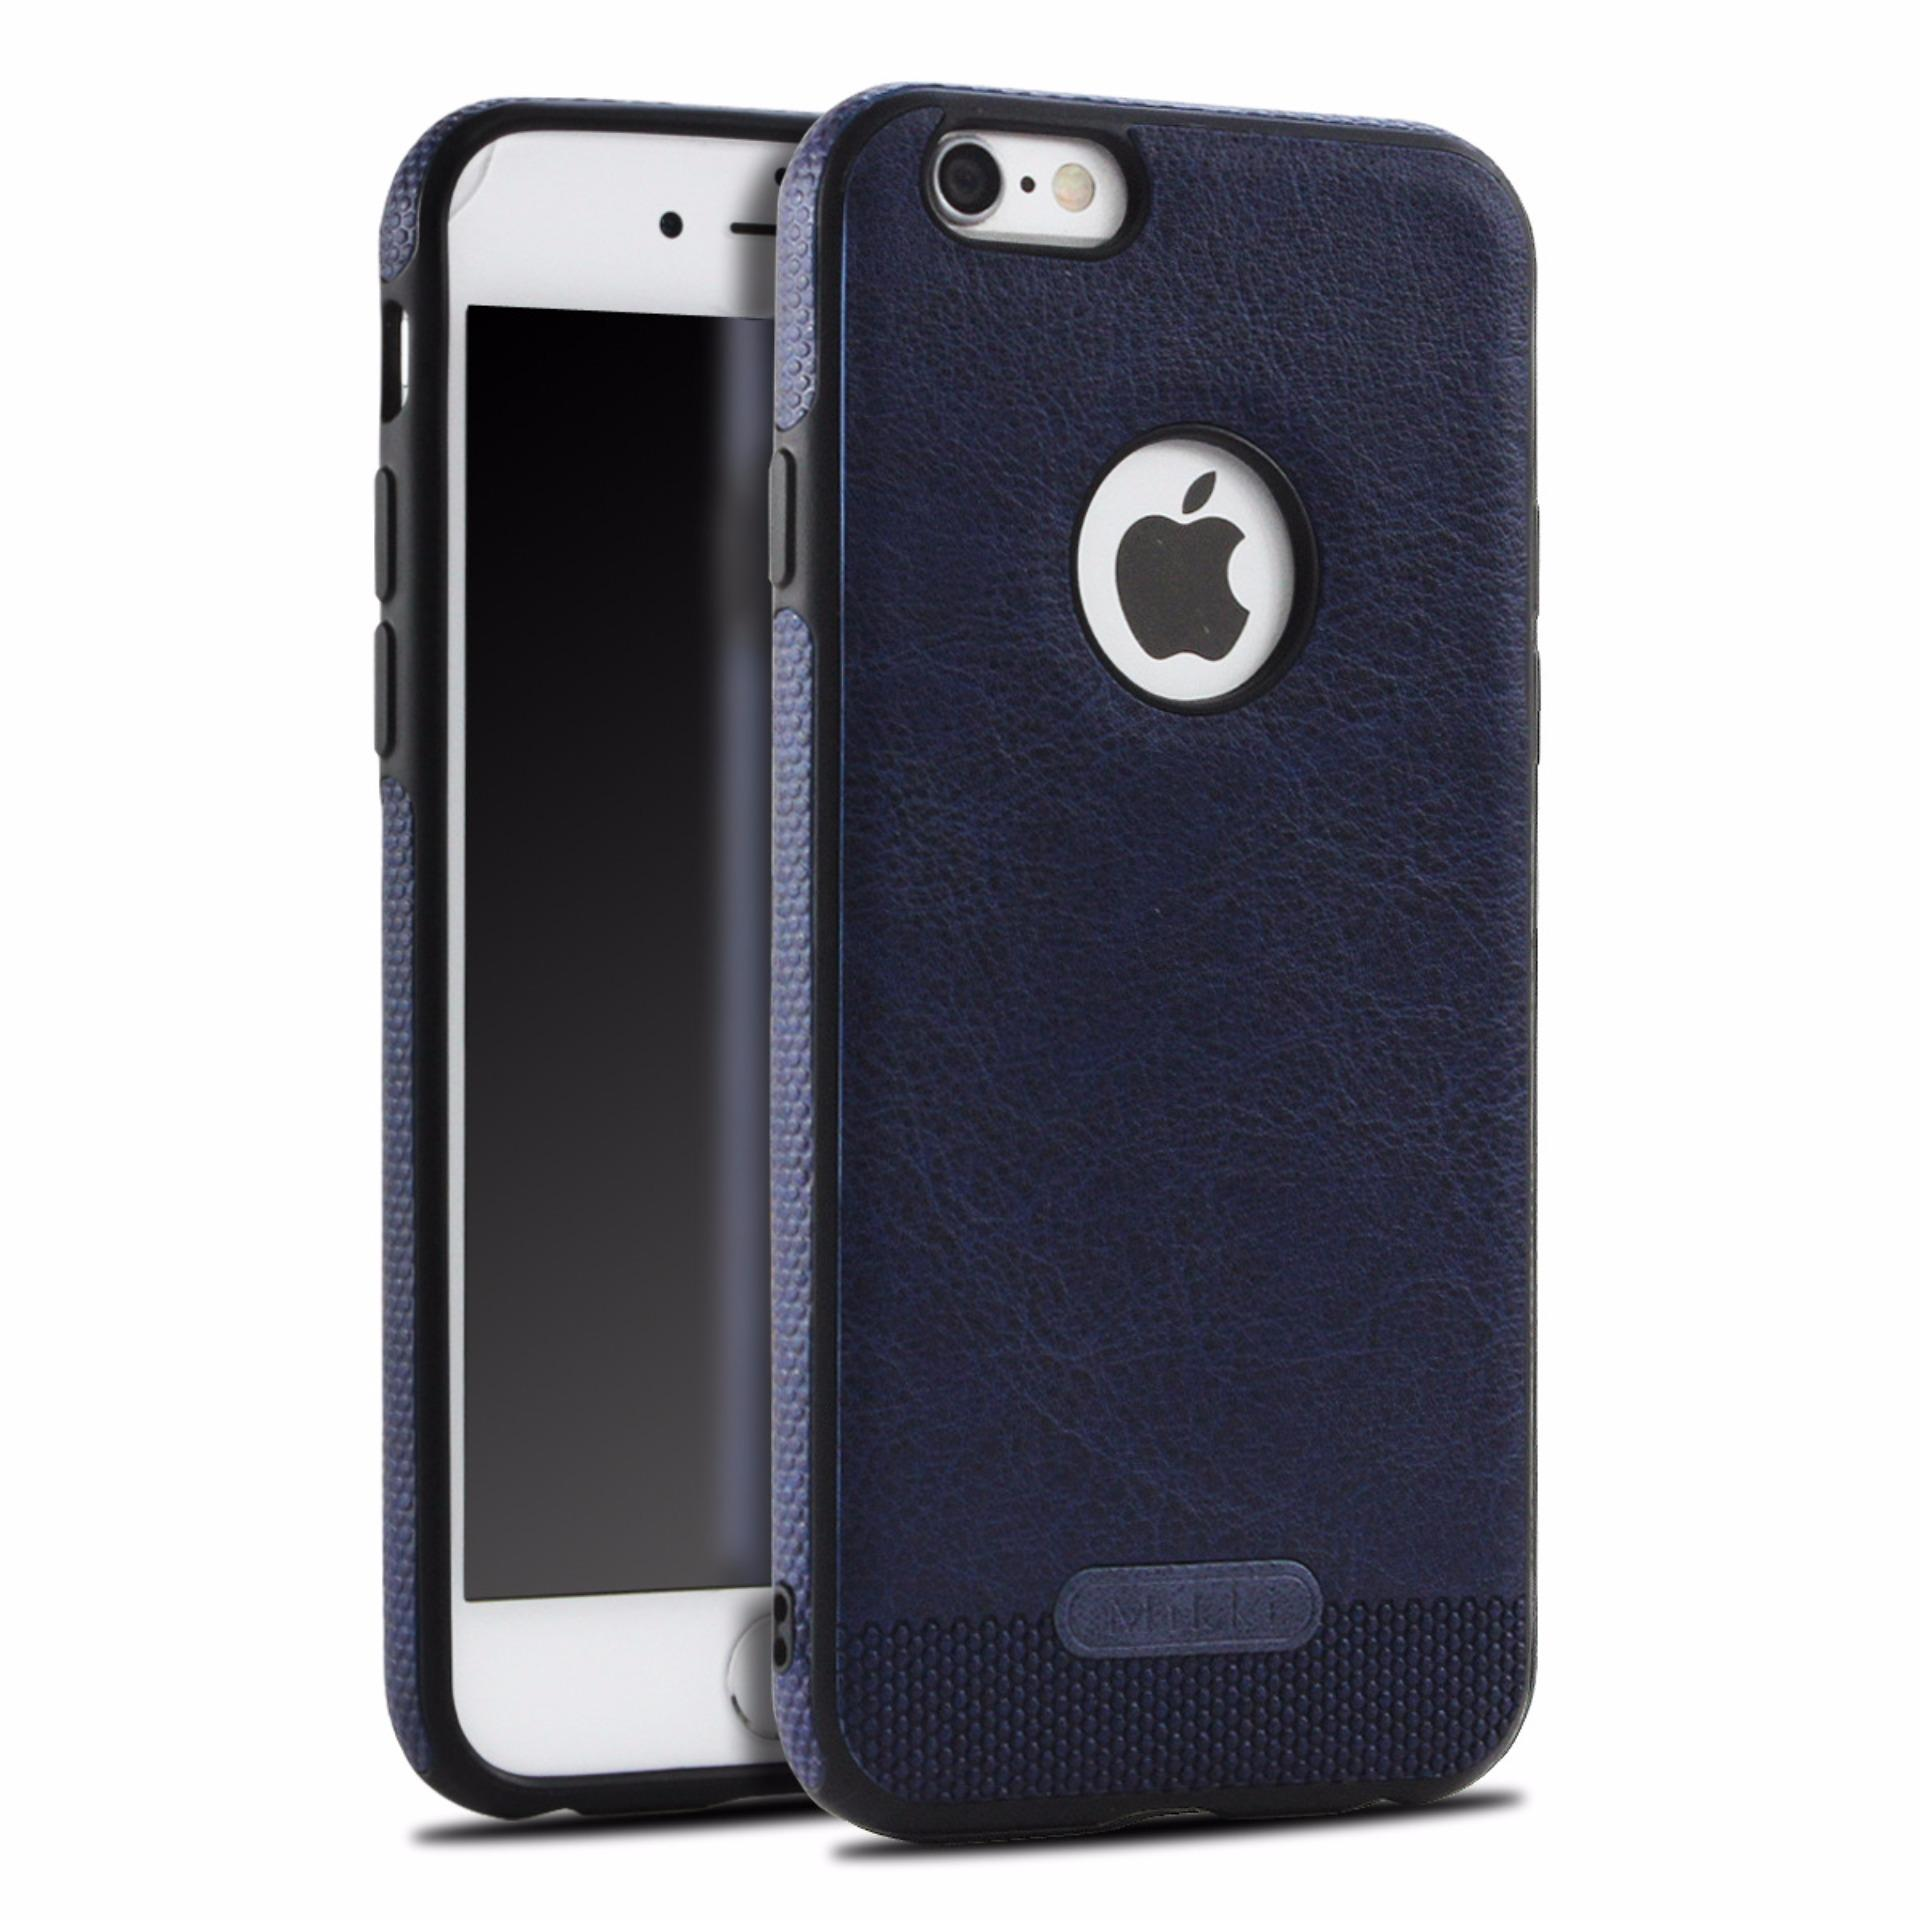 Spesifikasi Casing Case Iphone 6 Plus 6S Plus Leather Kulit Lengkap